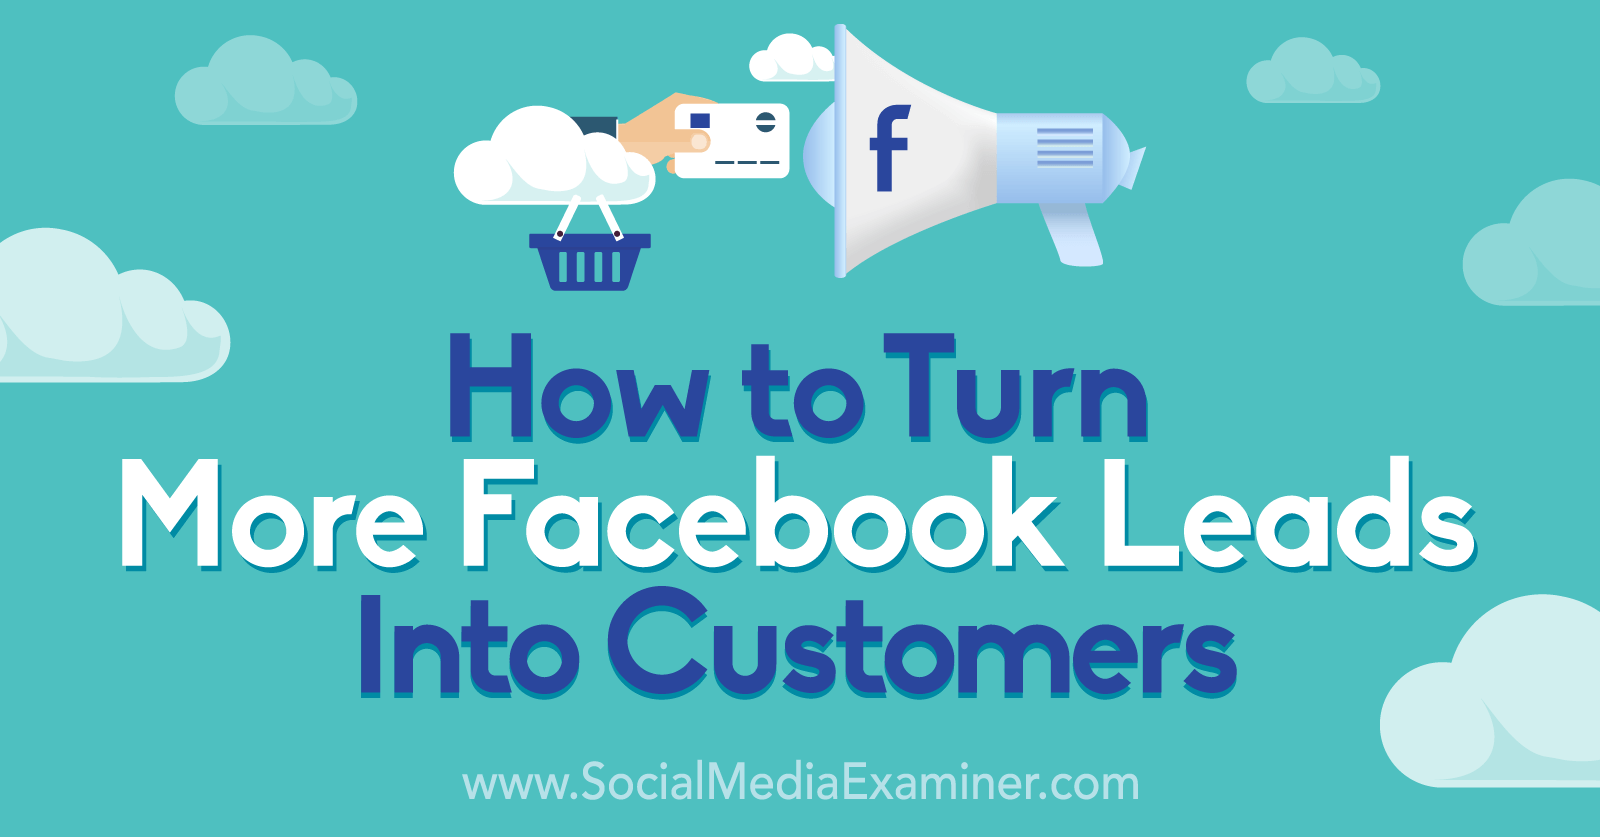 How to Turn More Facebook Leads Into Customers: A 5-Step